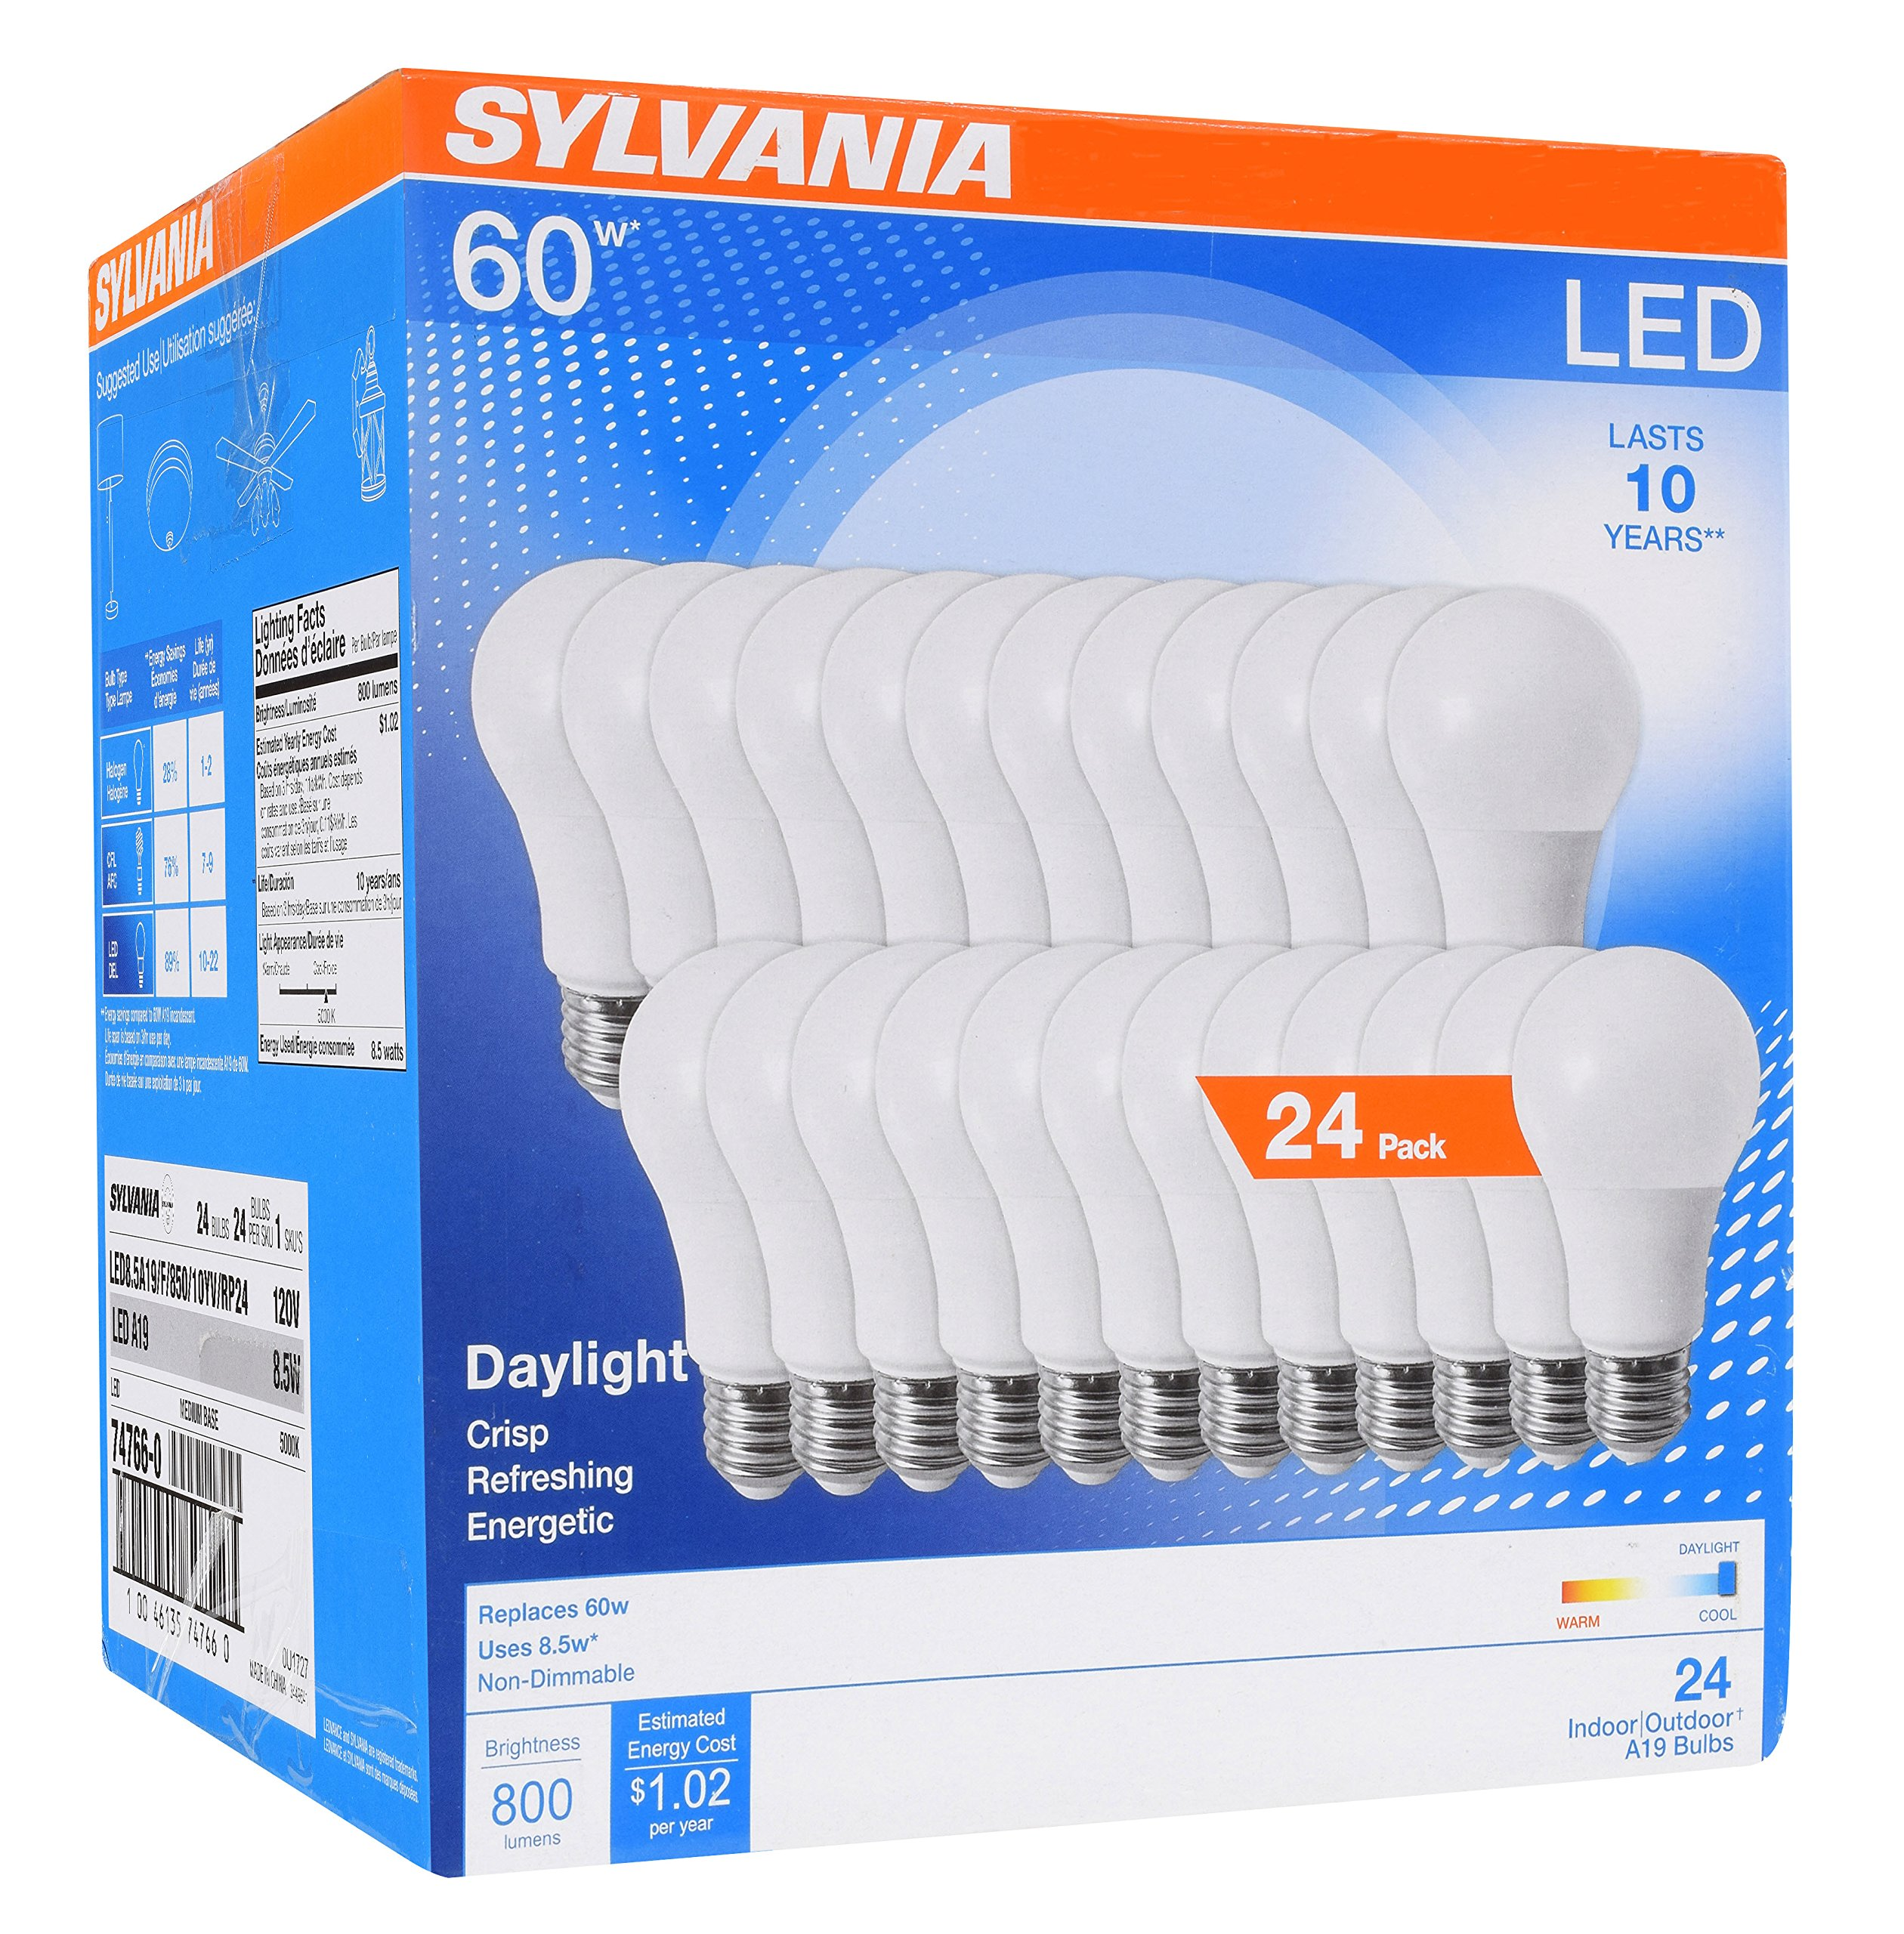 SYLVANIA General Lighting 74766 Sylvania 60W Equivalent, LED Light Bulb, A19 Lamp, Efficient 8.5W, Bright White 5000K, 24 Pack, Daylight, 24 Count by SYLVANIA General Lighting